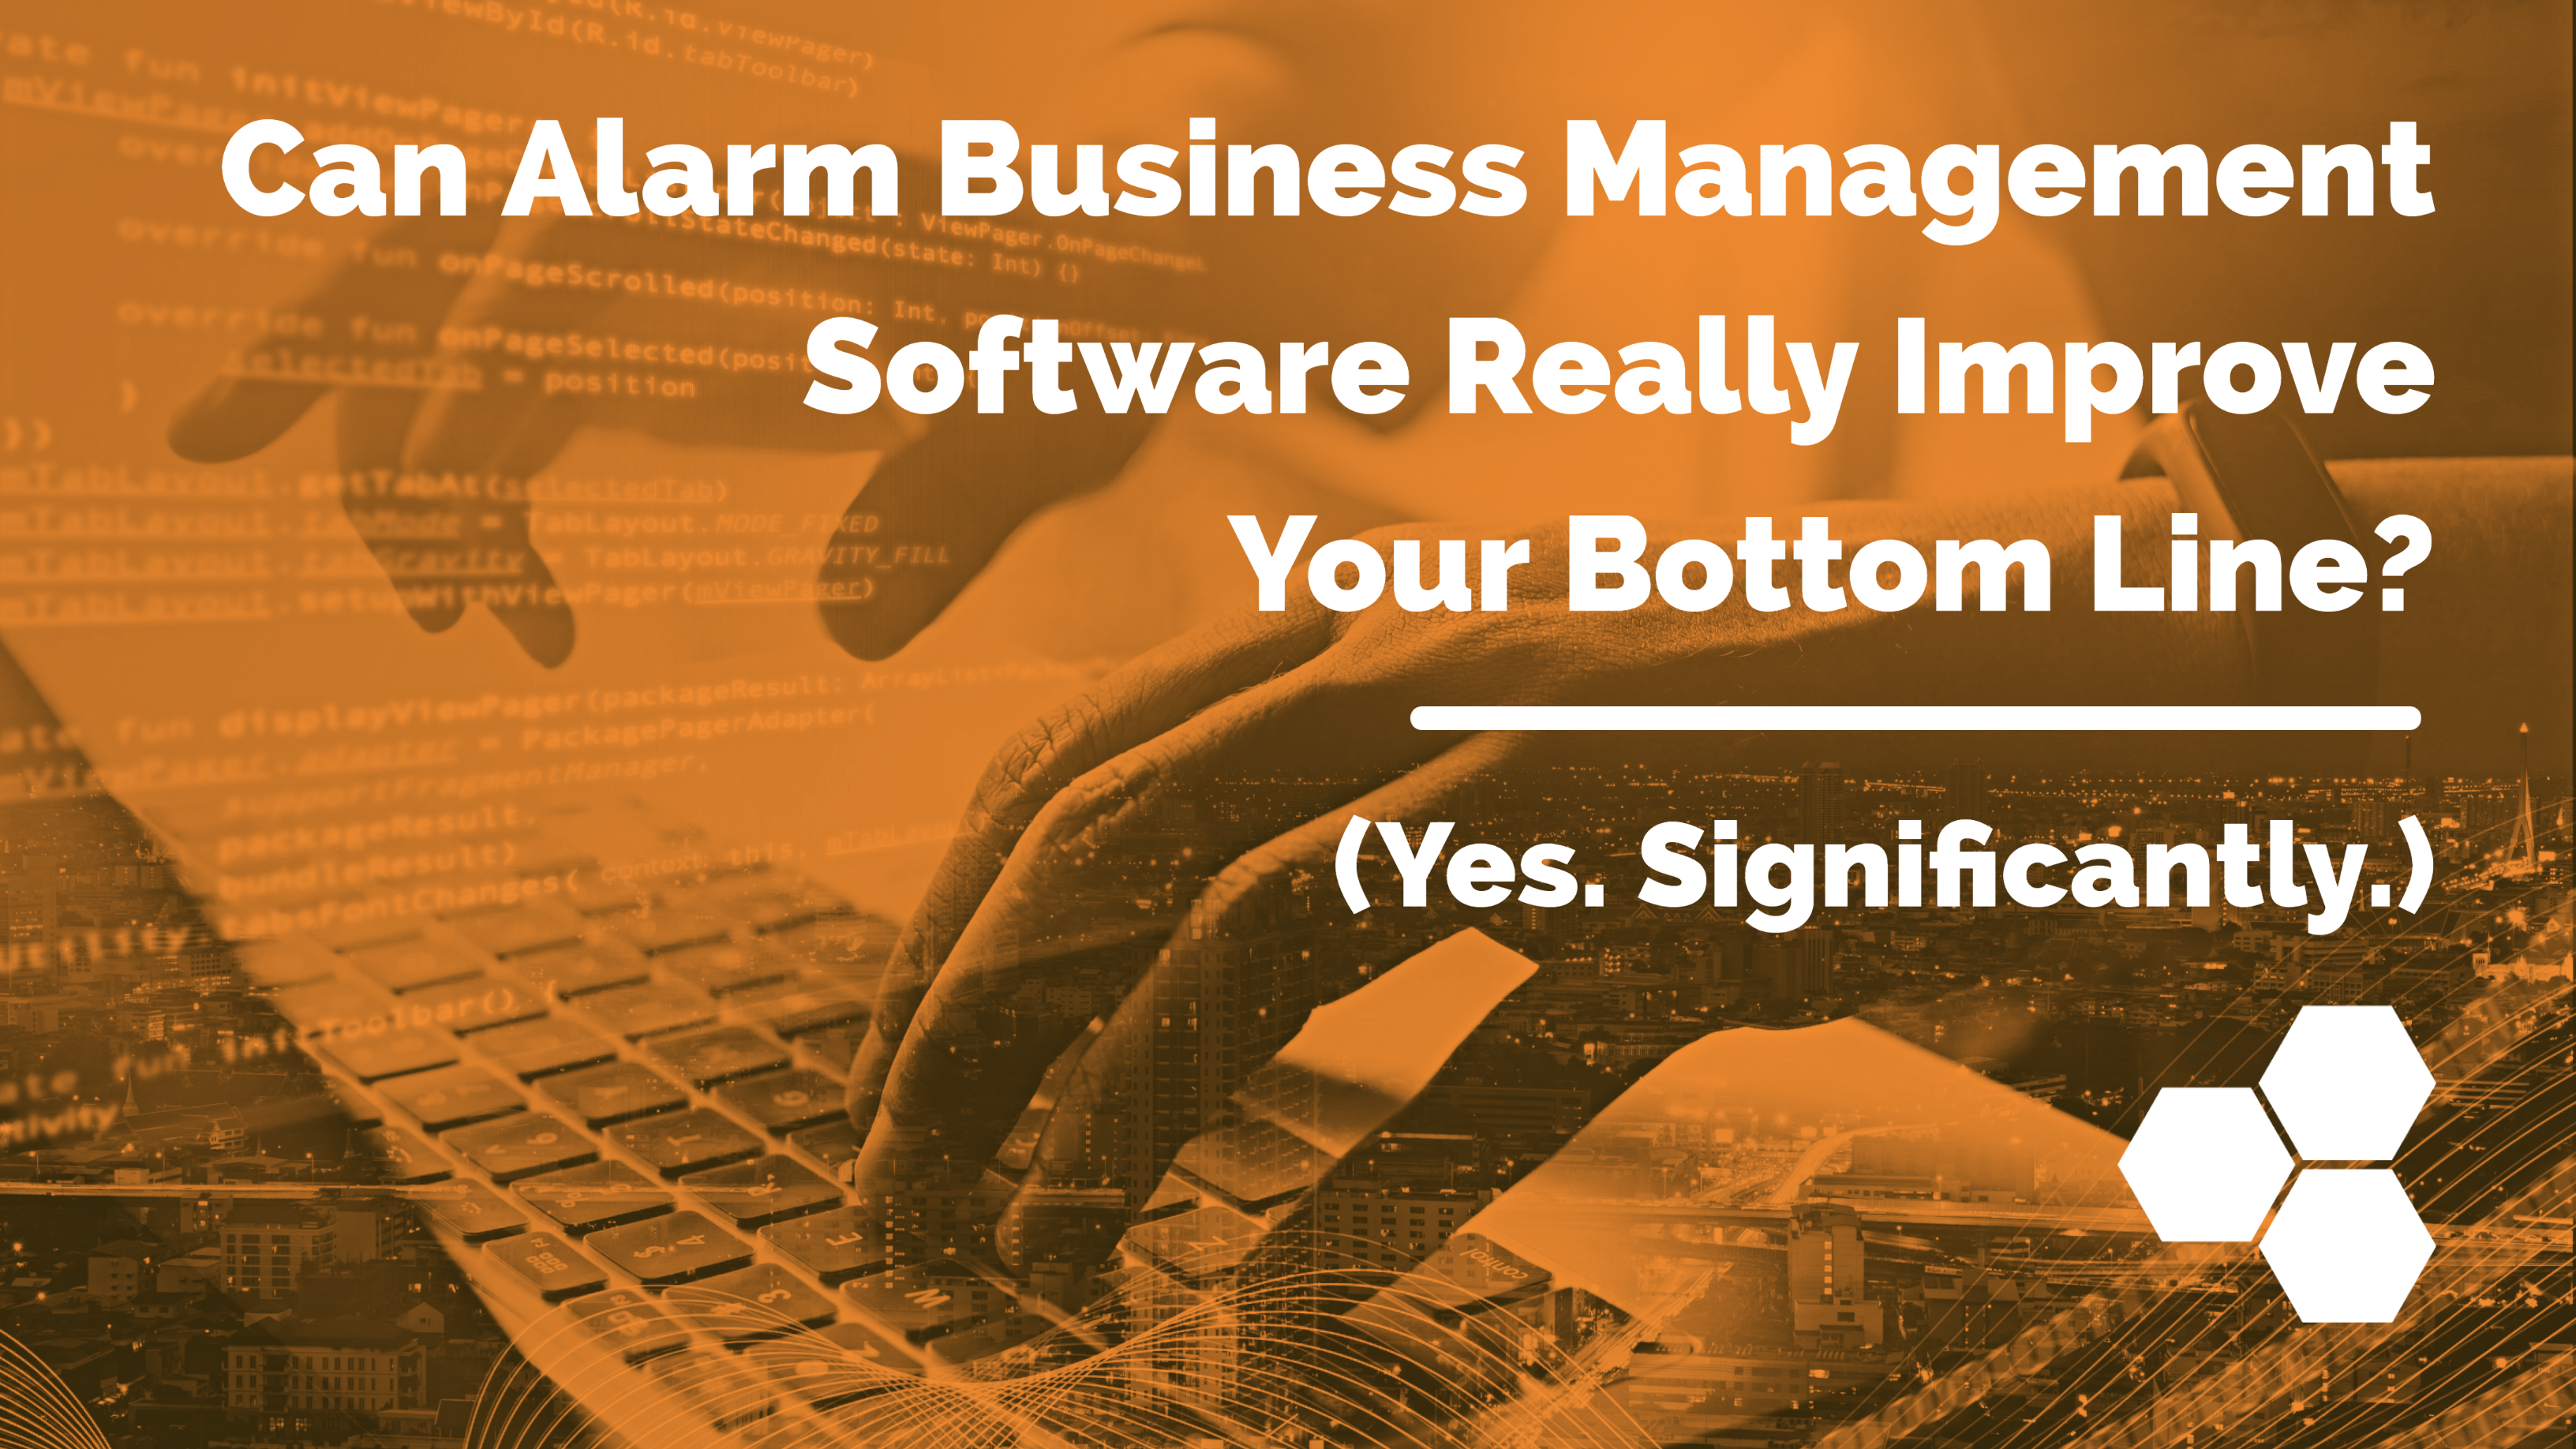 Highlights From SSI's Deep Dive Into Alarm Business Management Software